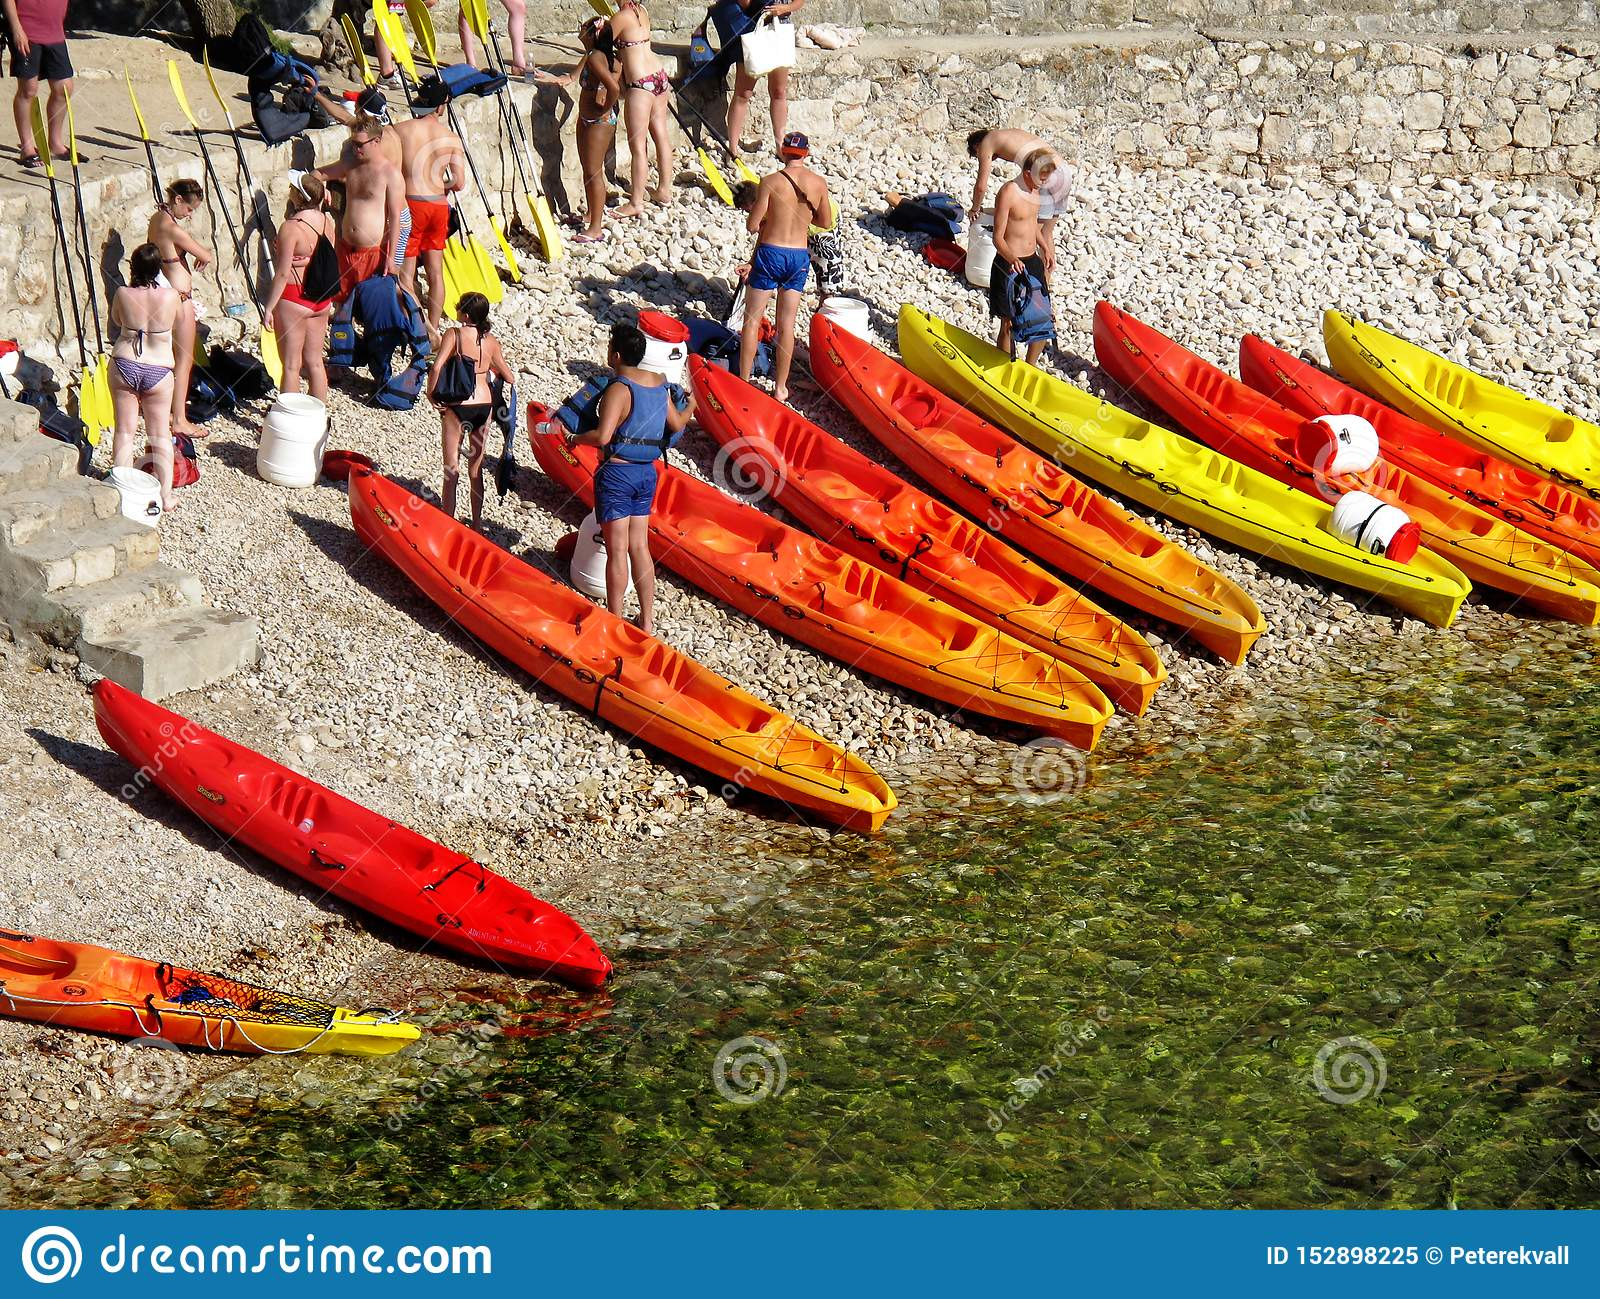 People of different ages will soon paddle canoe